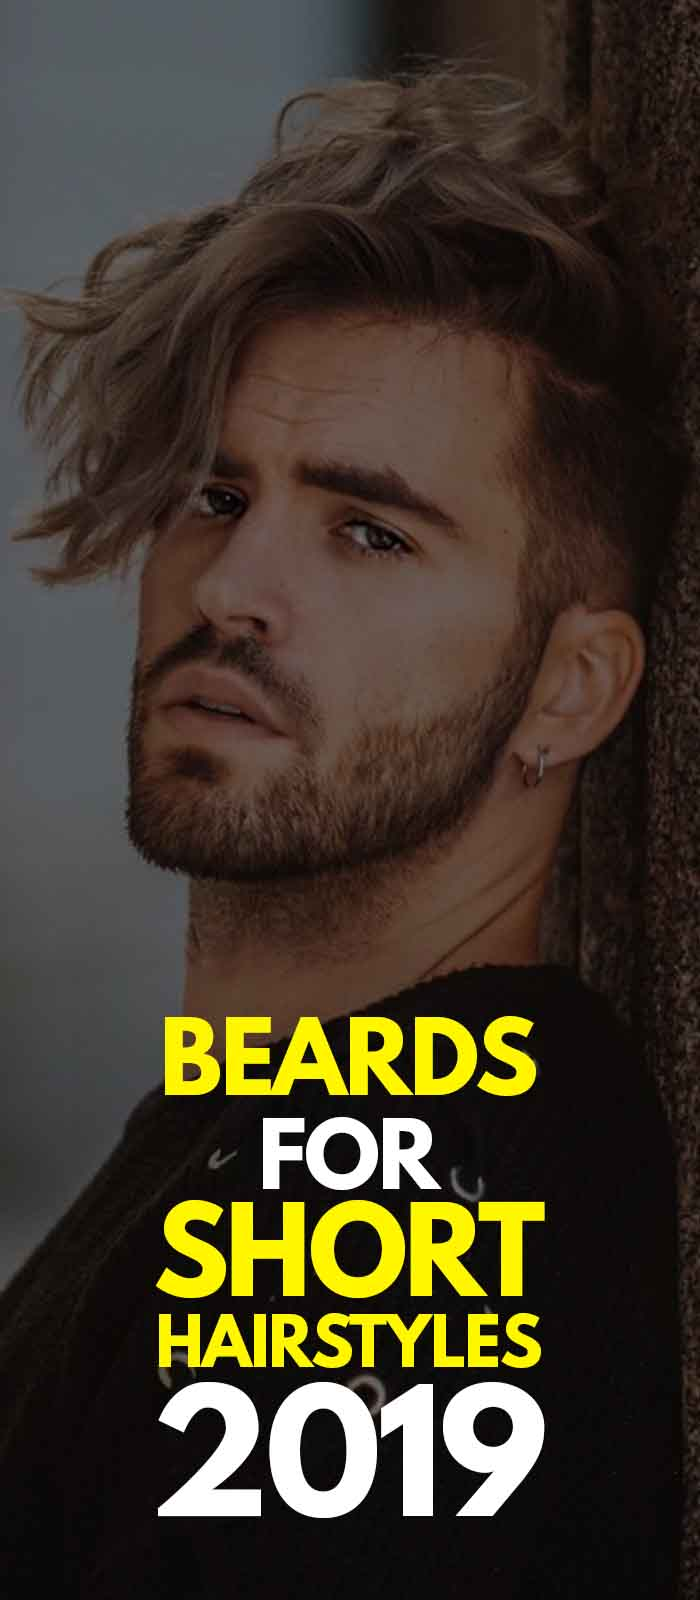 Perfect Combination of Short Side Long hair with beard!